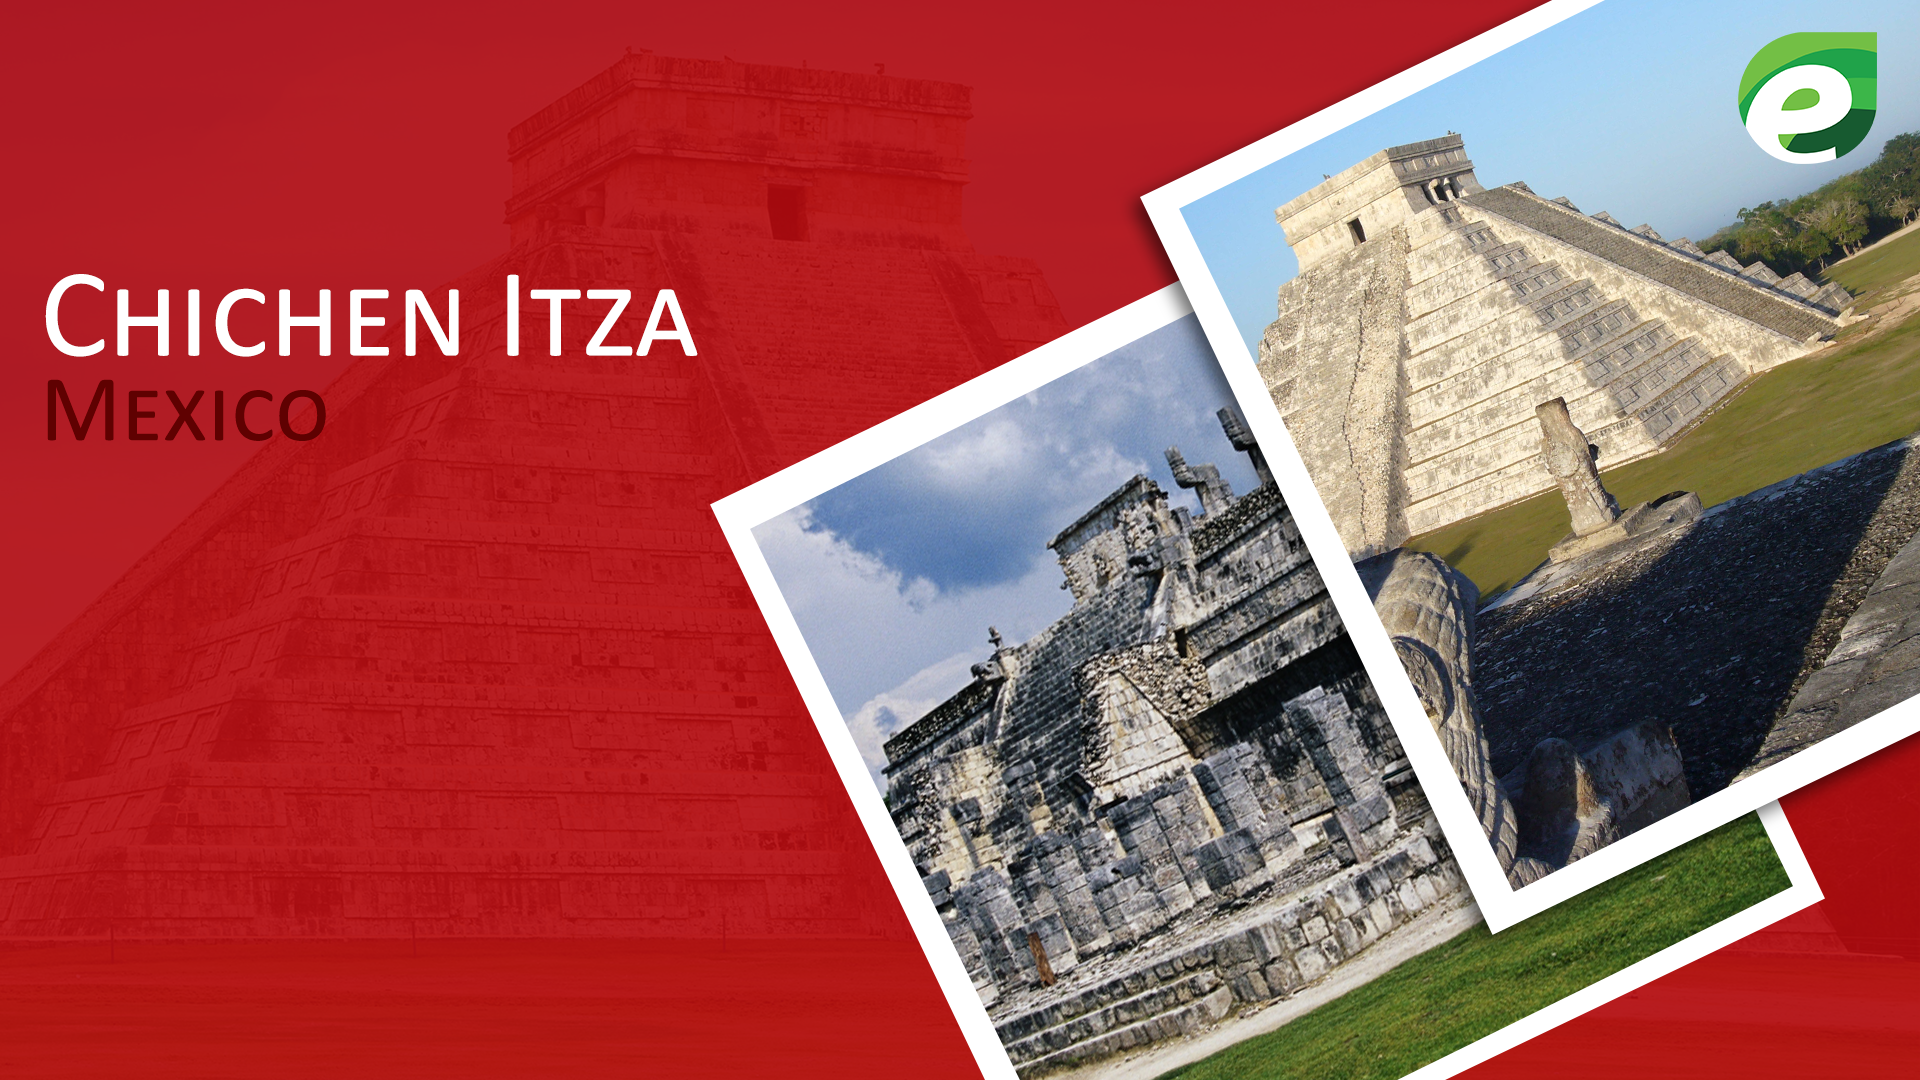 historical sites to visit - Chicken Itza